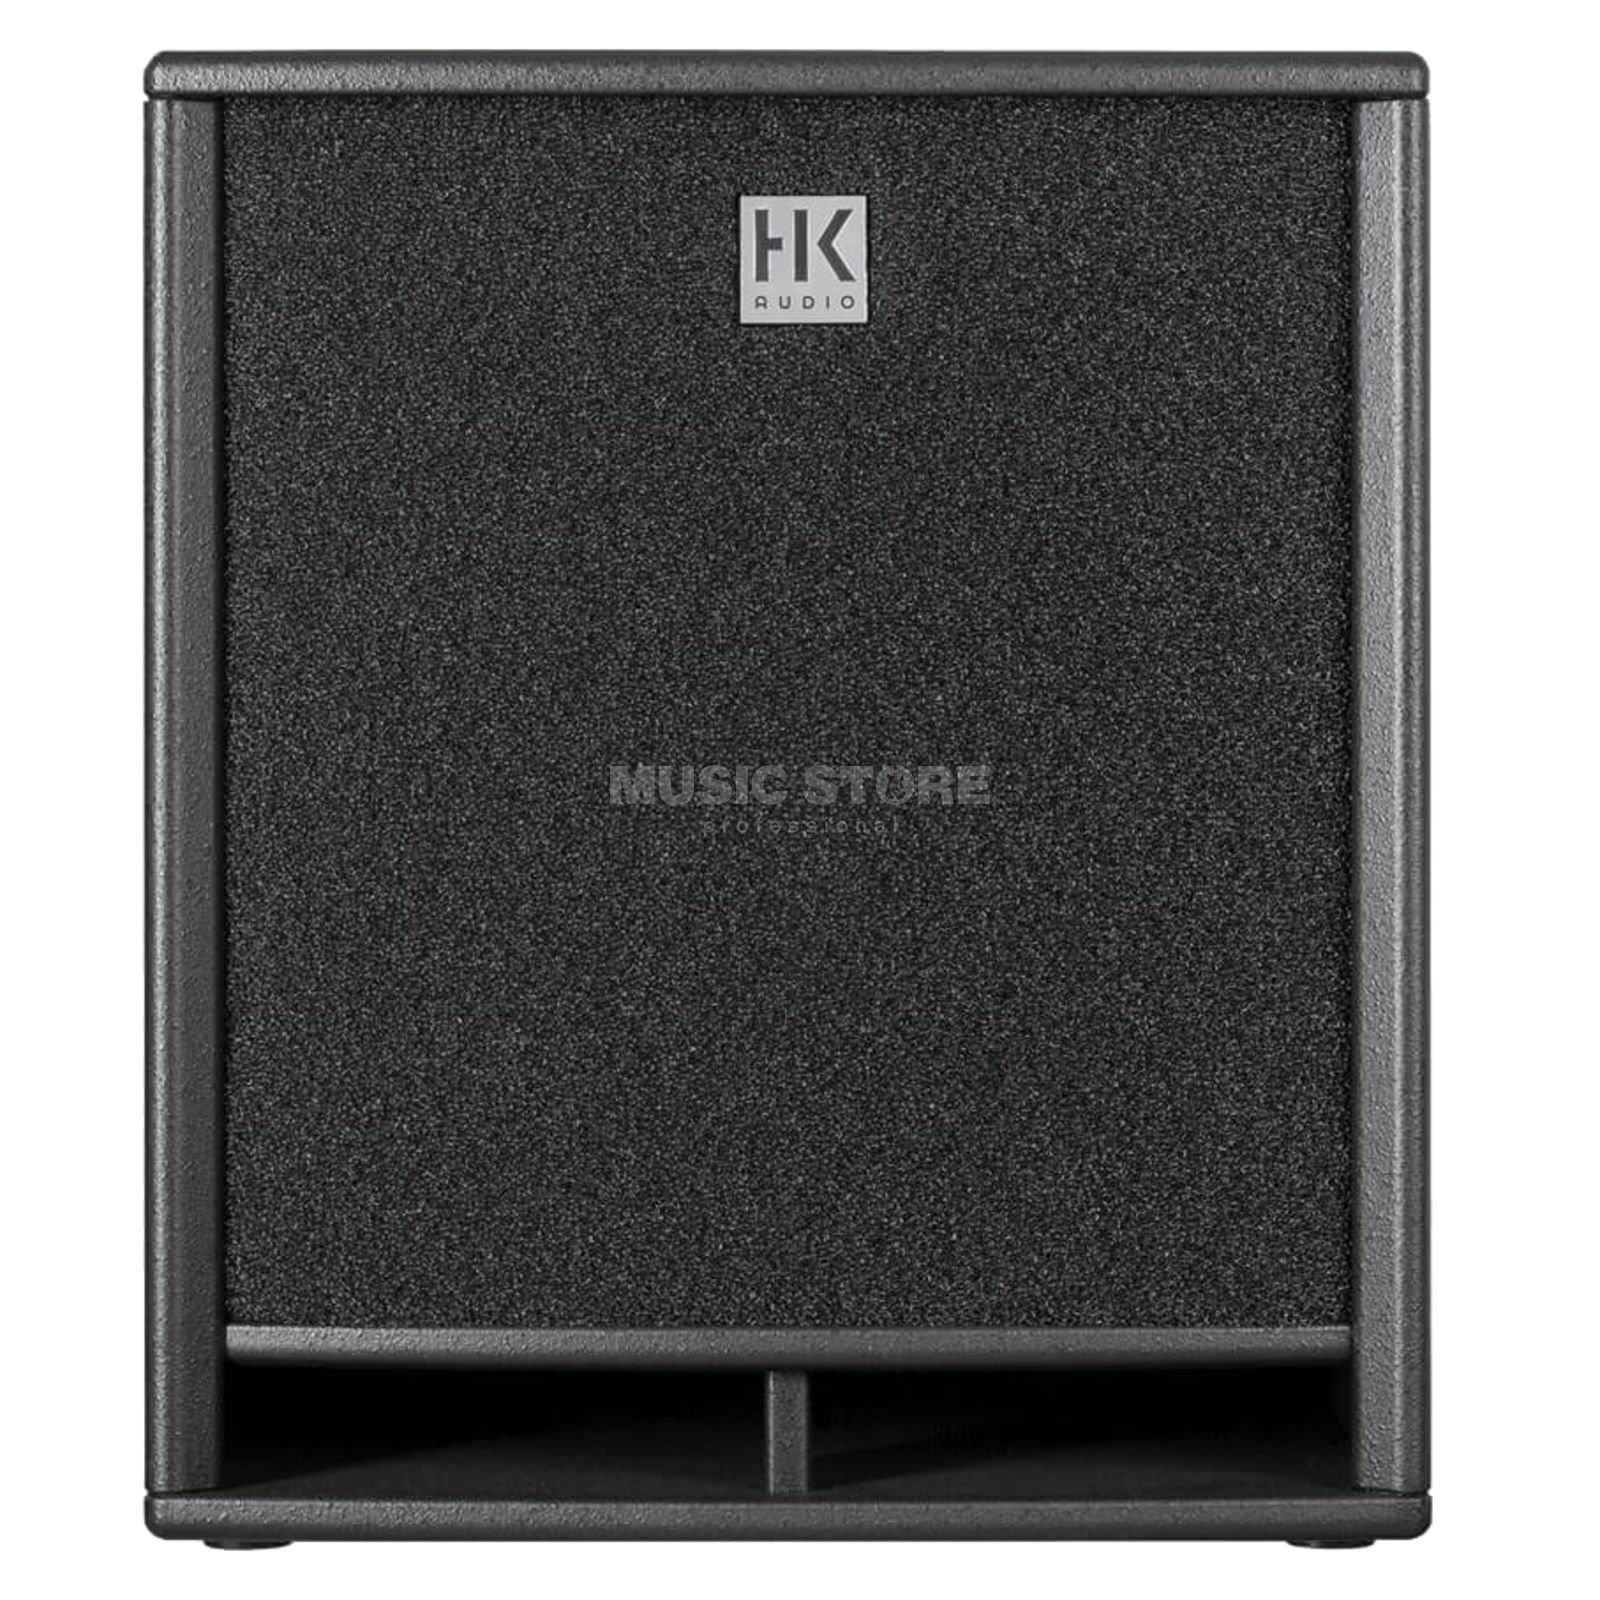 hk audio premium pr o 18s caisson basse passif 500w rms 4 ohms 18. Black Bedroom Furniture Sets. Home Design Ideas